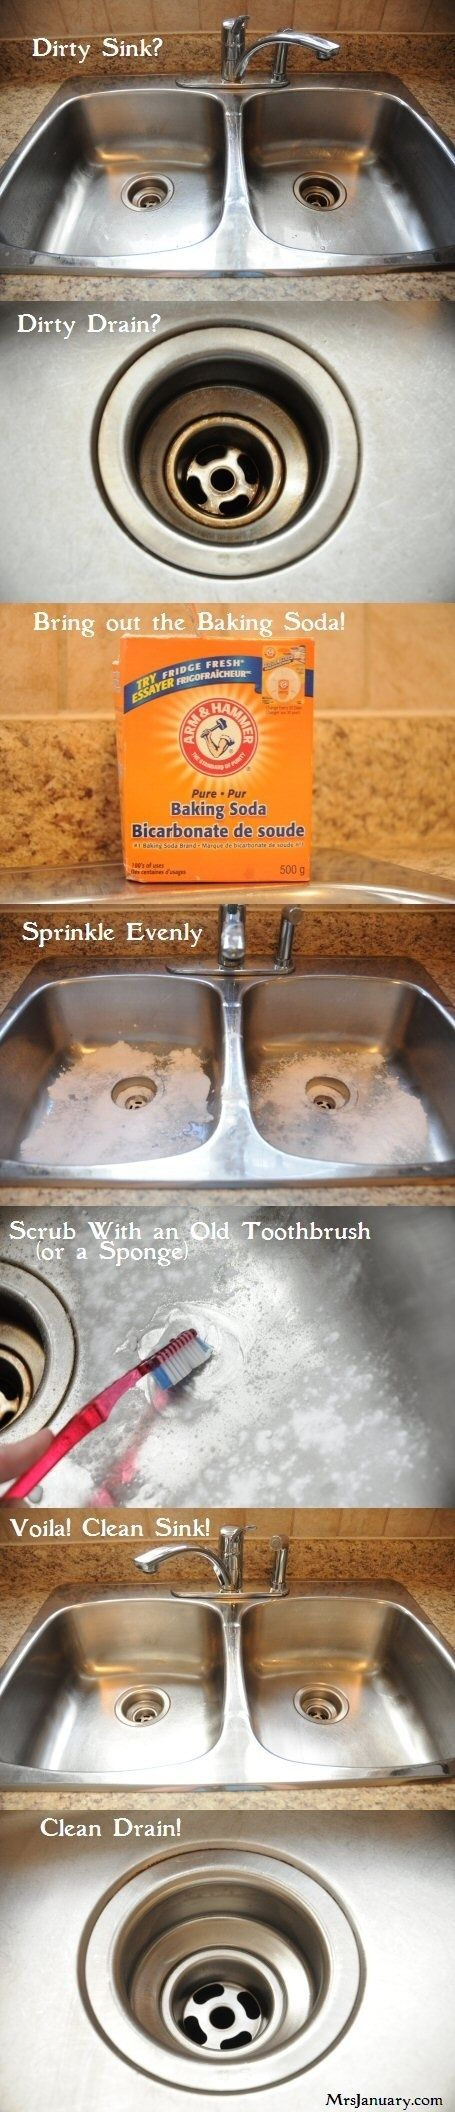 Clean a stainless steel sink with baking soda.